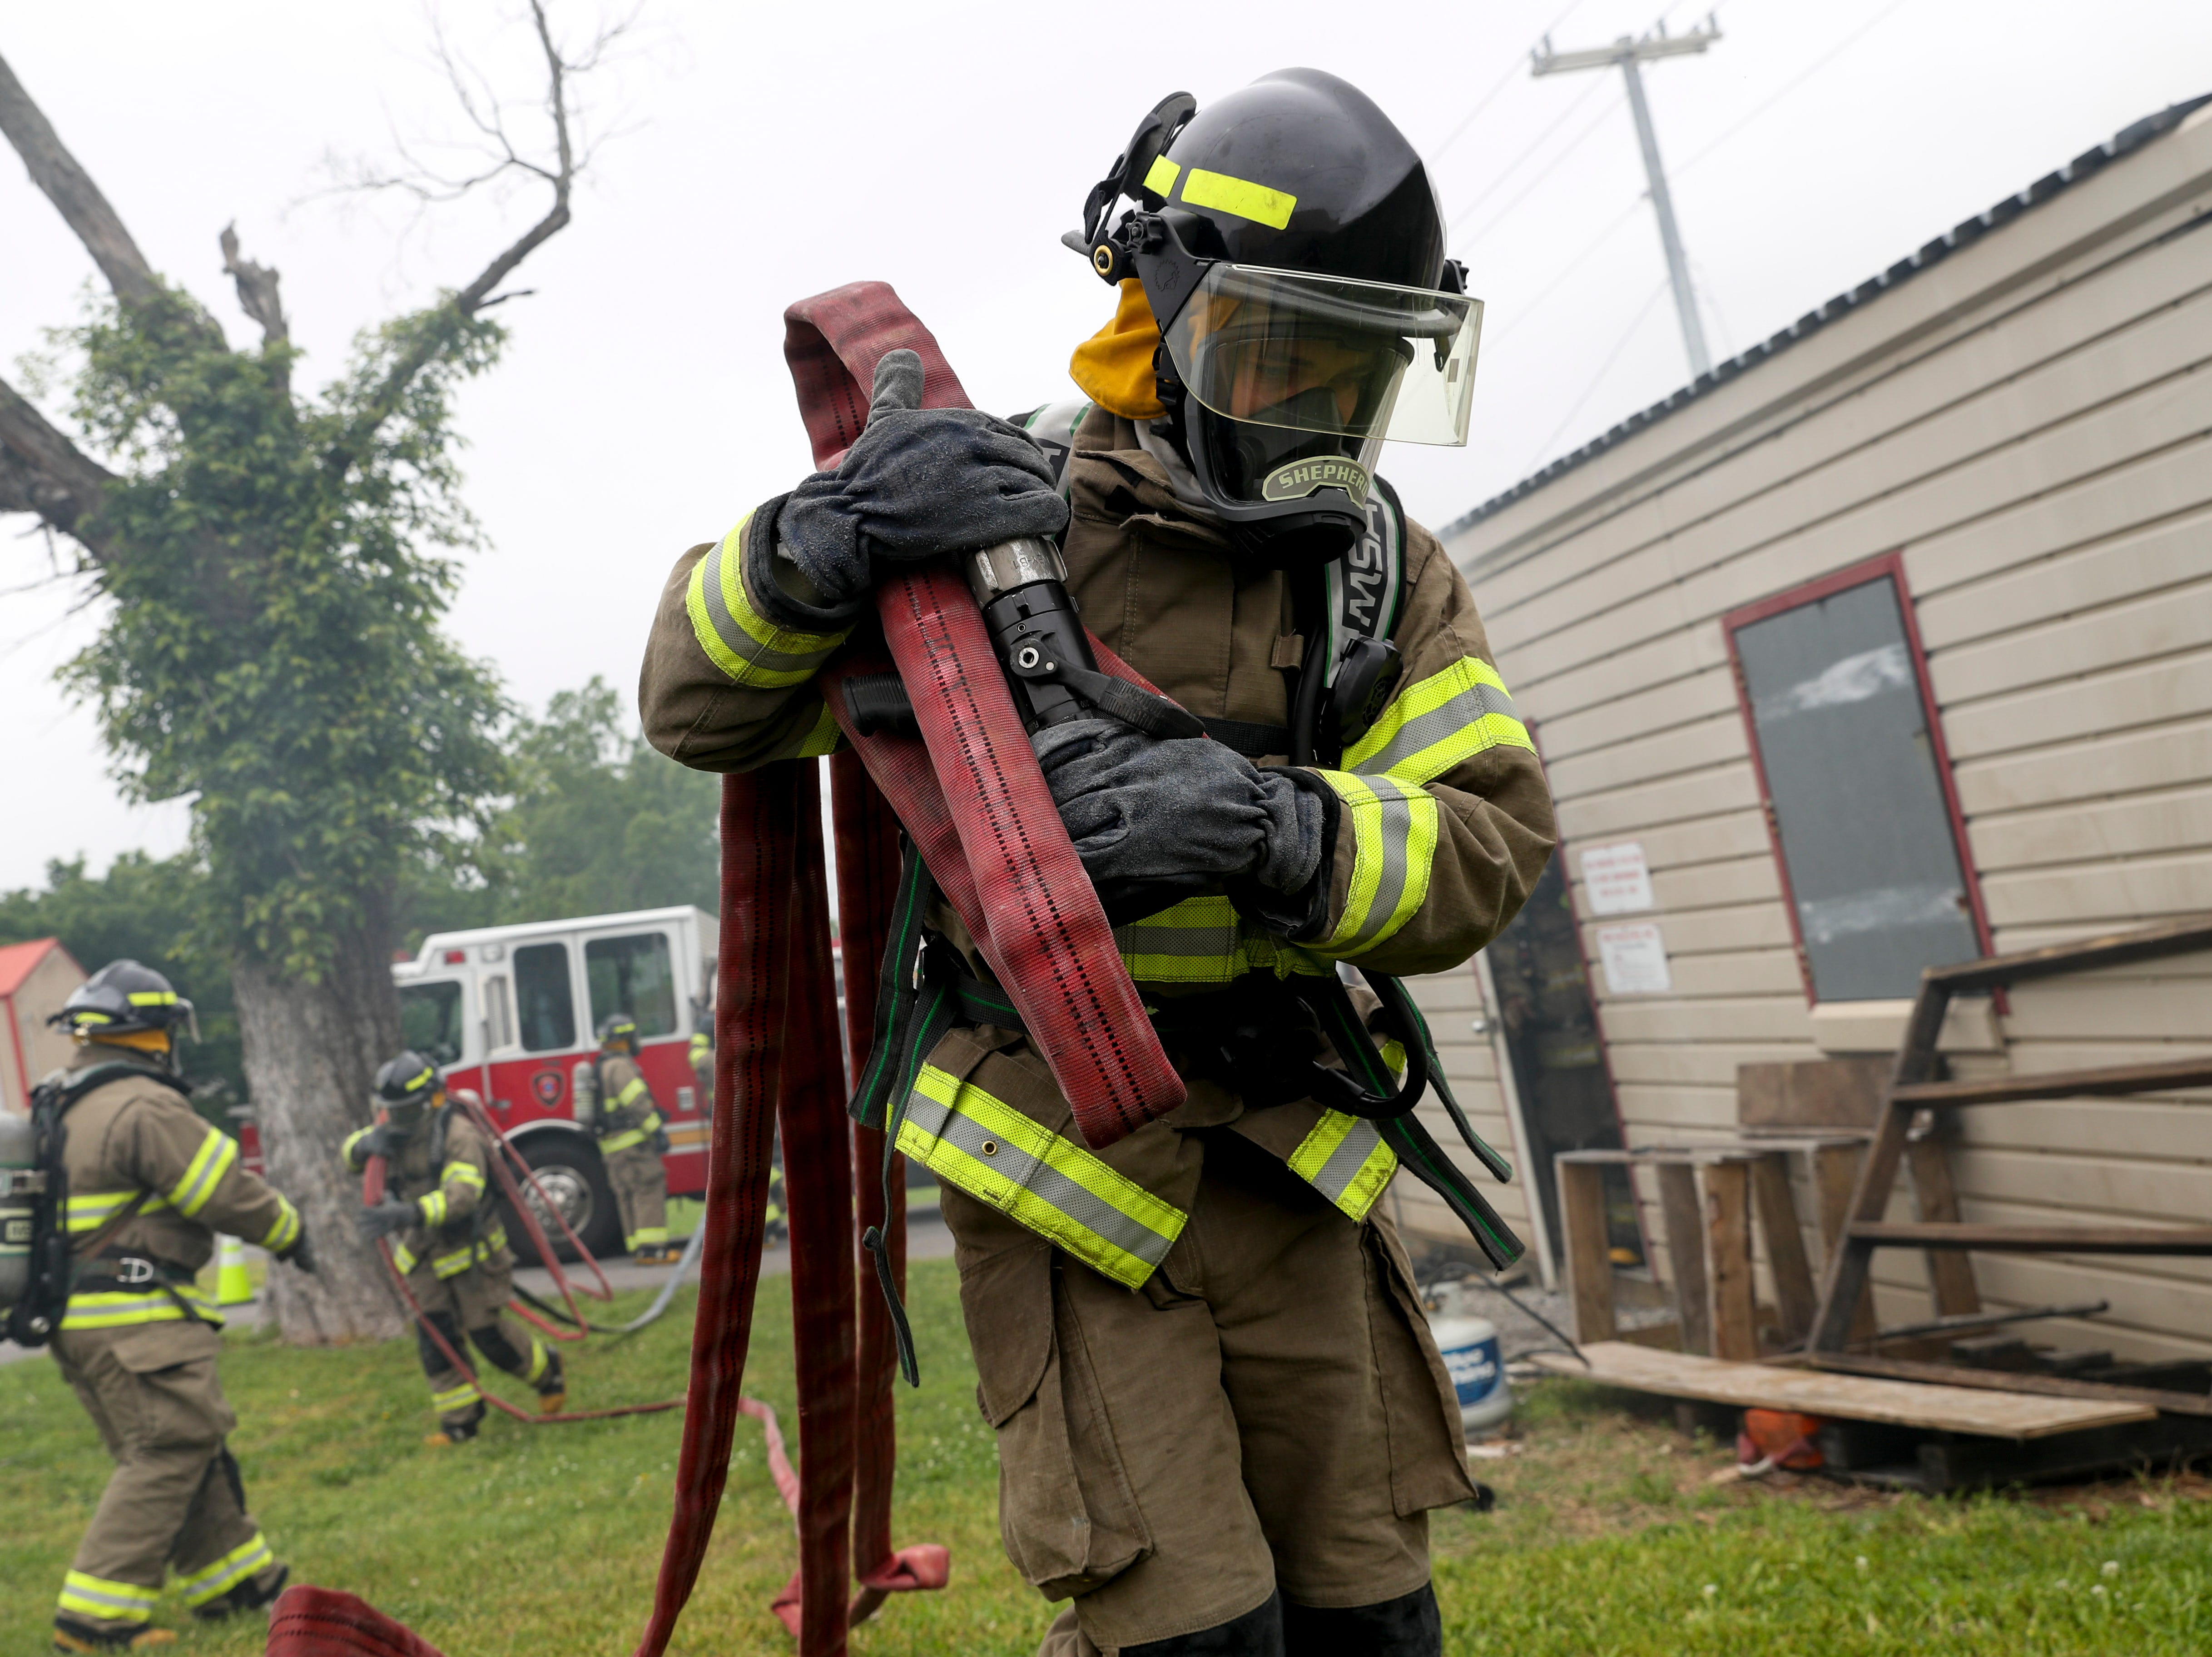 Chayce Shepherd walks with a hose hoisted over his shoulder, spreading it for use at a live fire drill at Clarksville Fire Rescue in Clarksville, Tenn., on Friday, May 10, 2019.